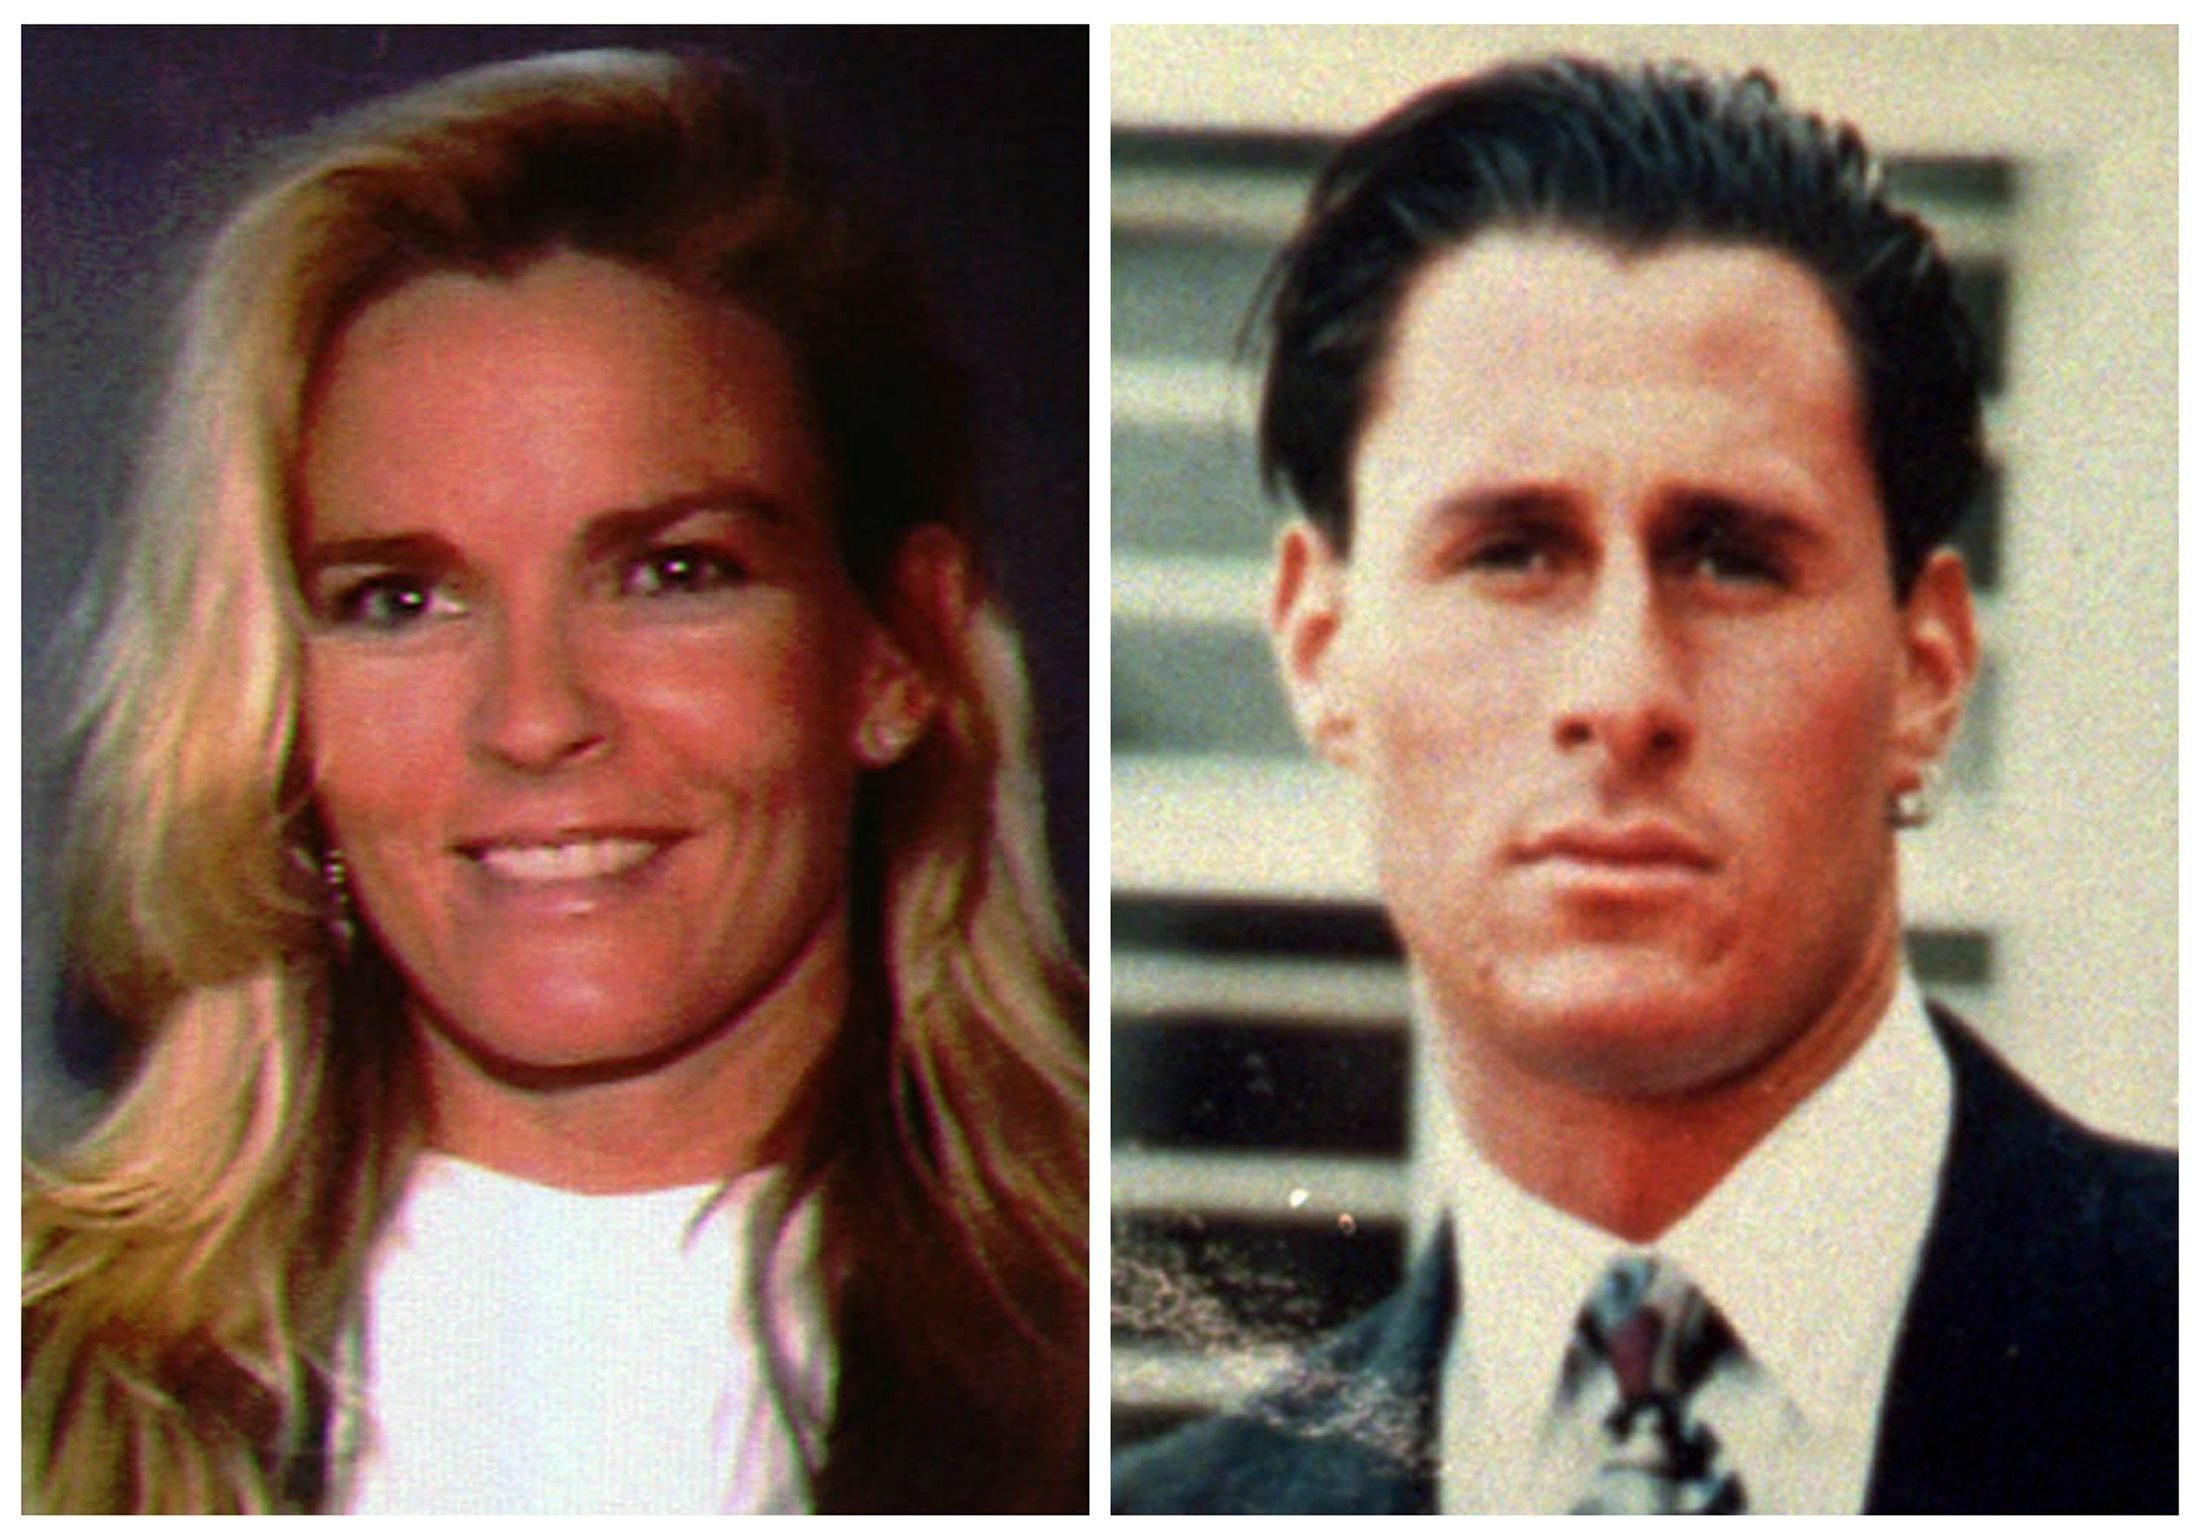 "Nicole Brown Simpson, Ron Goldman This file combo photo shows Nicole Brown Simpson, left, and her friend Ron Goldman, both of whom were murdered and found dead in Los Angeles on . Hall of Fame football star O.J. Simpson was charged with the murders of Nicole and Goldman, but a jury later found him not guilty in what some call the ""Trial of the Century"